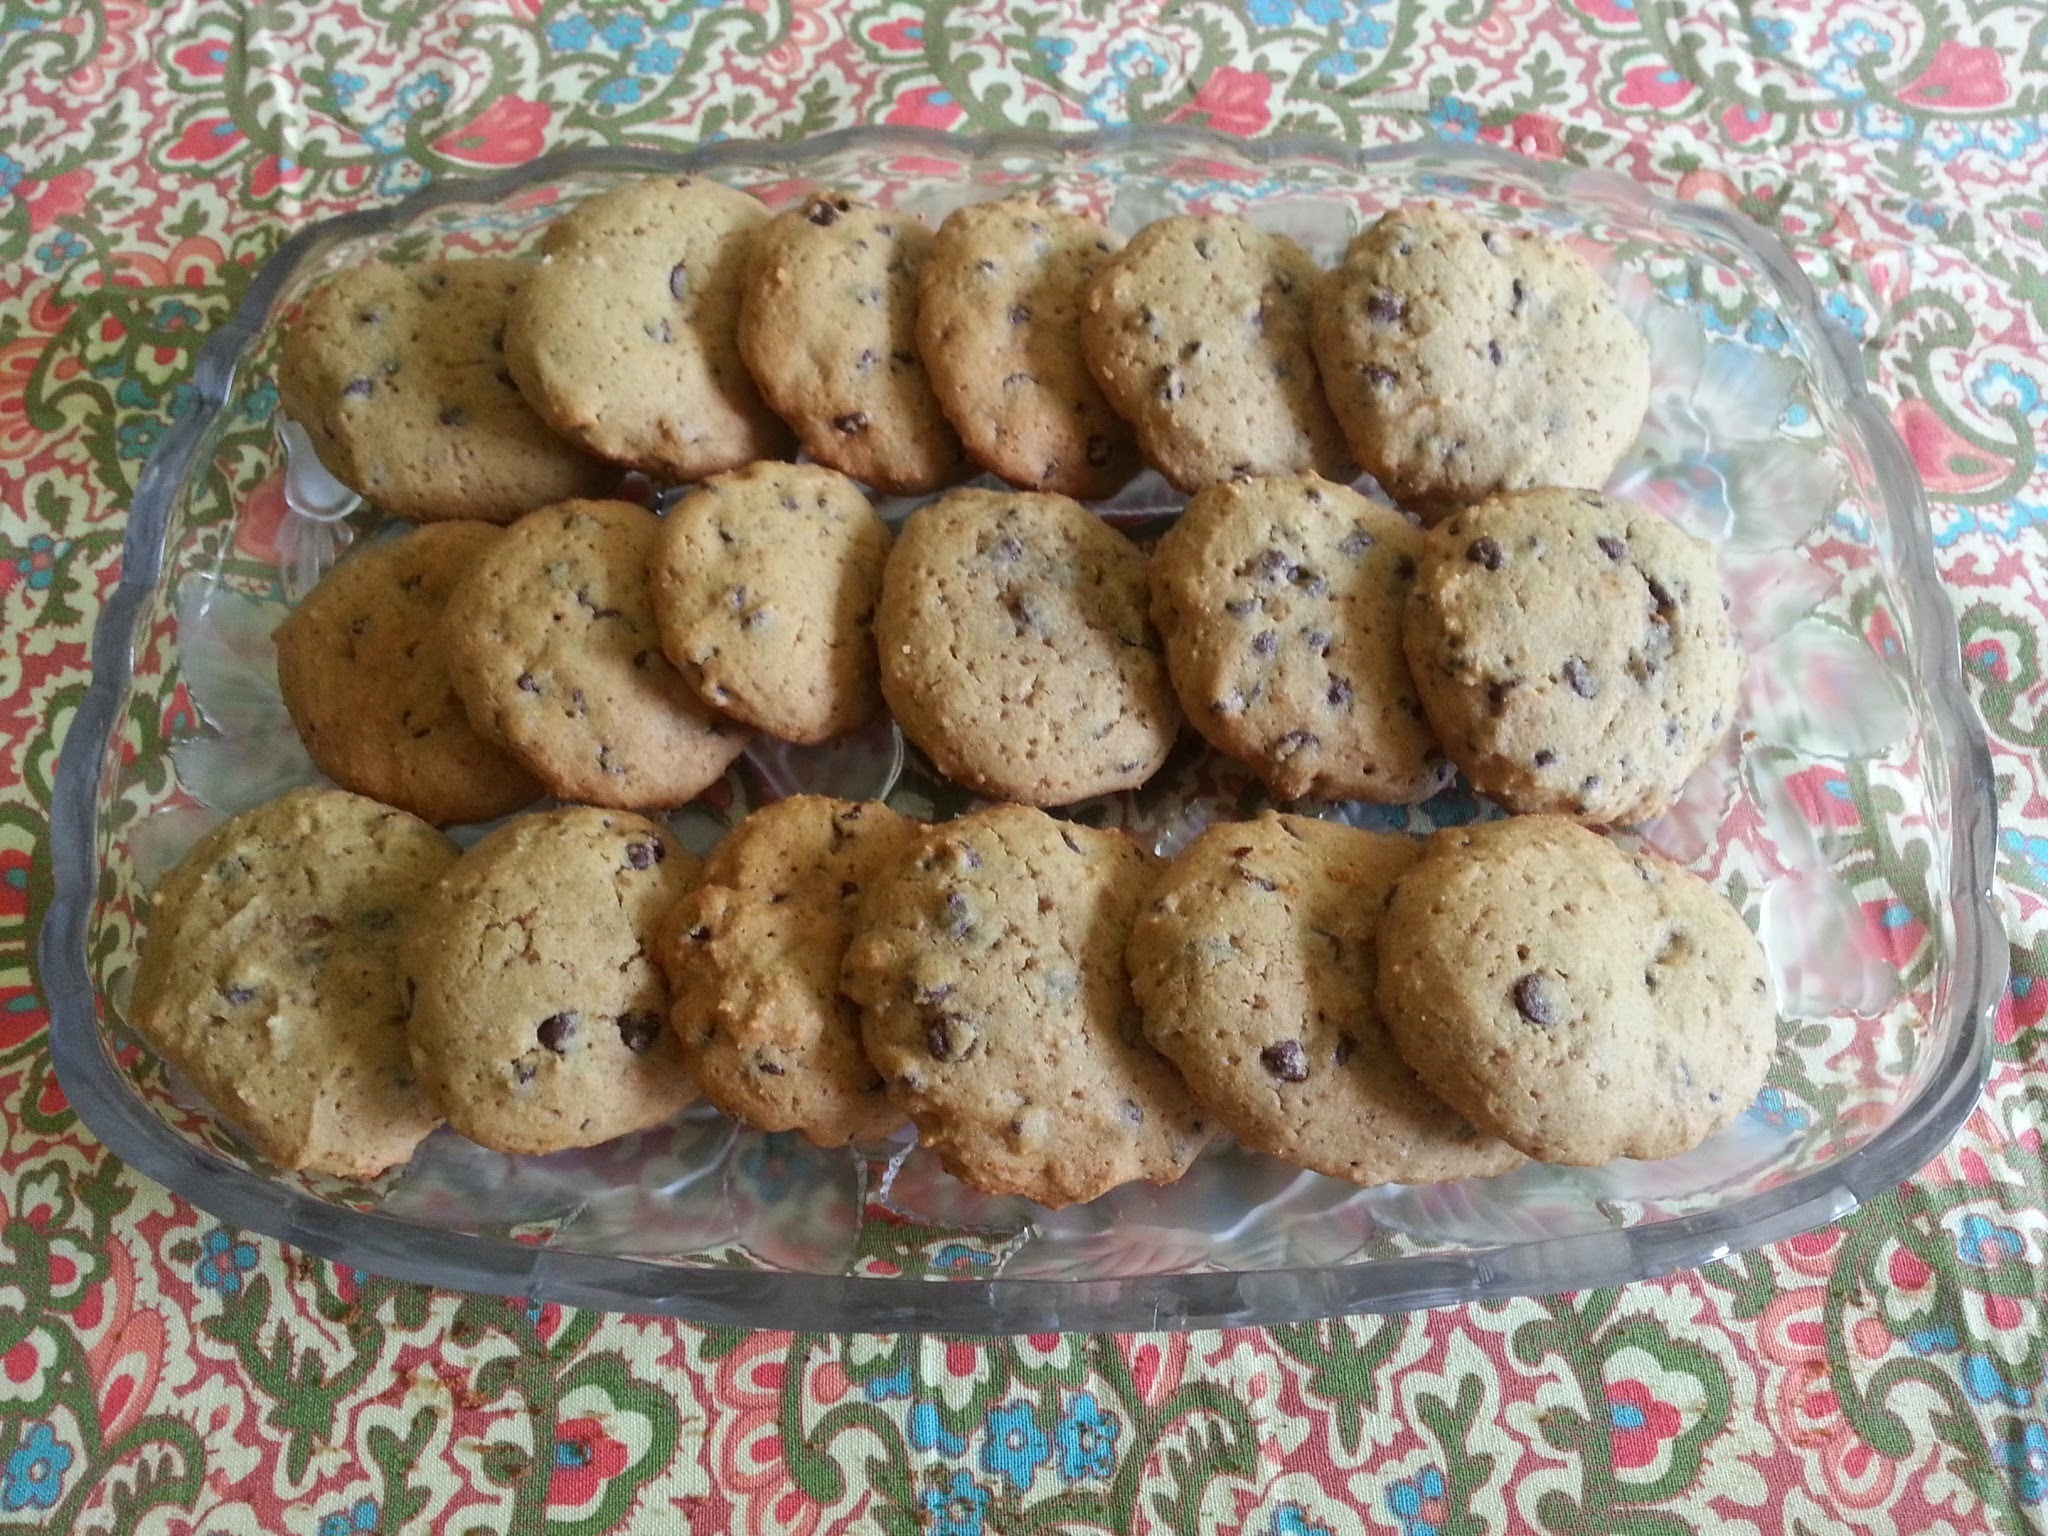 Mark's Famous Chocolate Chip Cookies - Made Gluten Free!